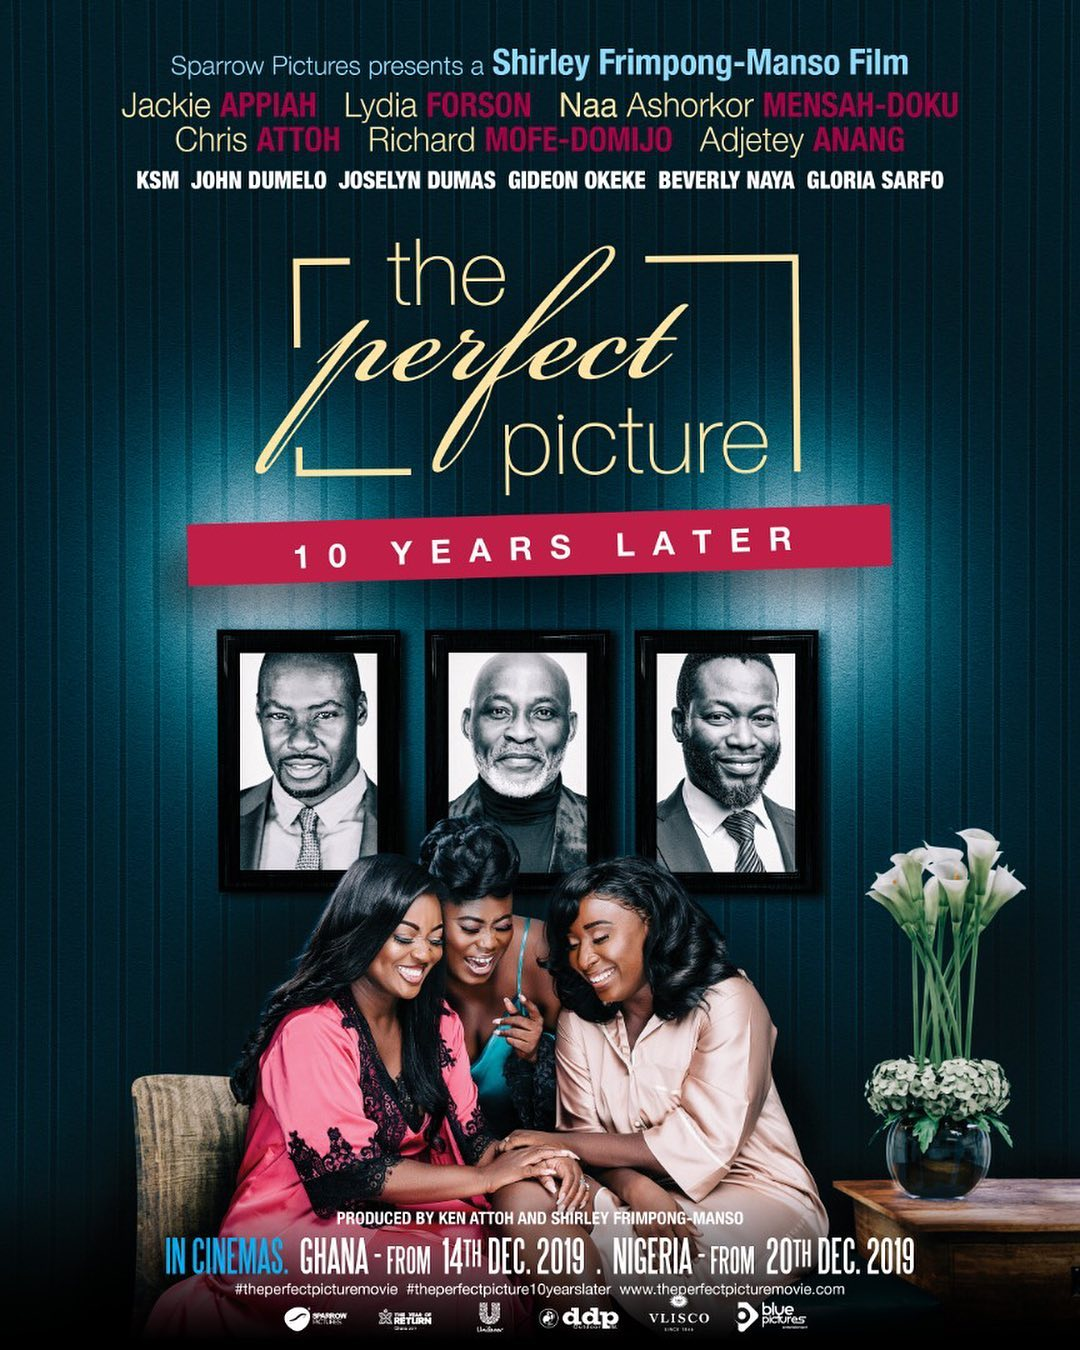 The official poster for The Perfect Picture by Shirley Frimpong-Manso